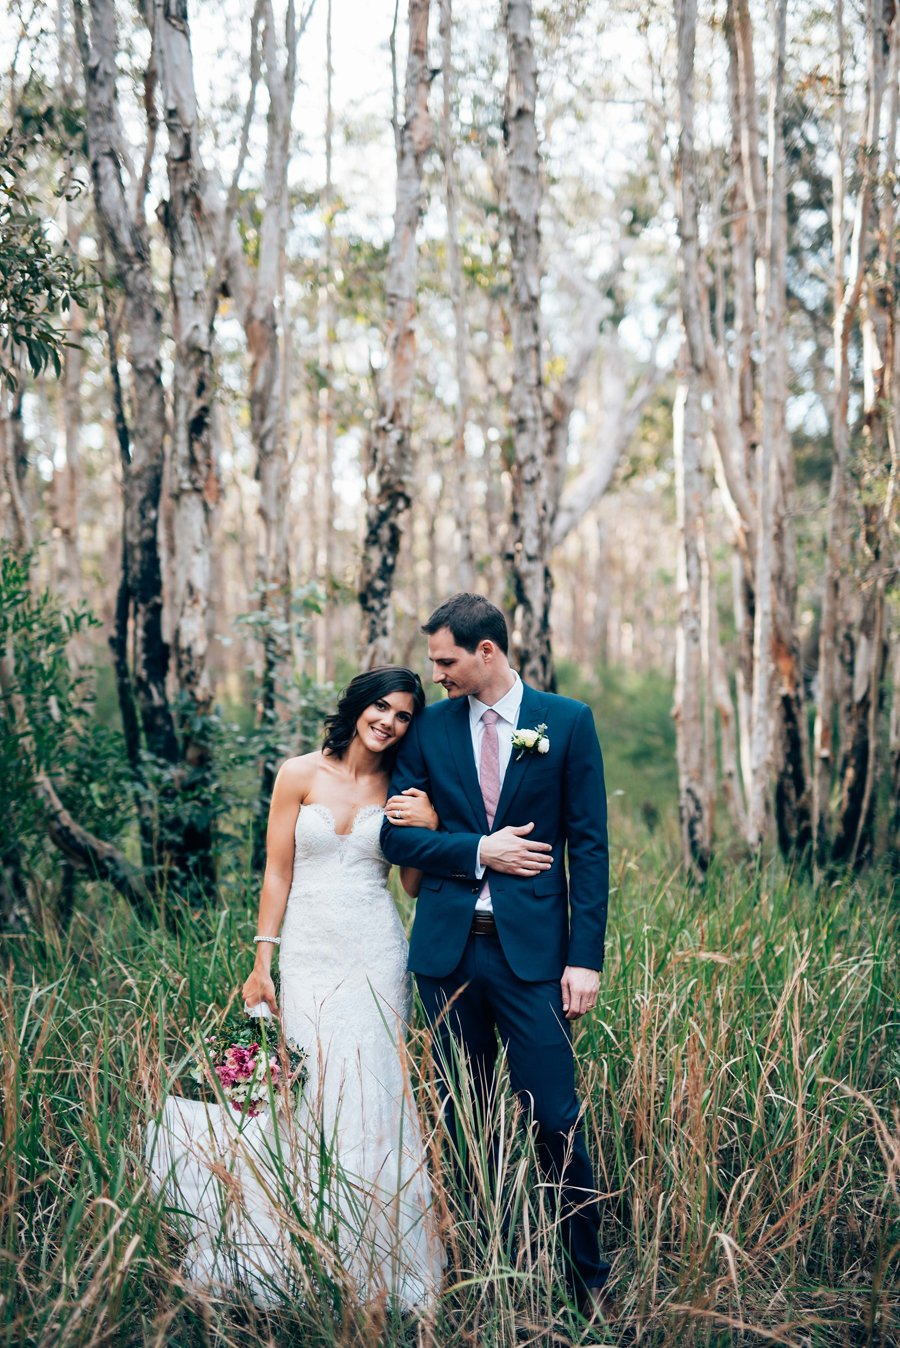 Aimee-Jane and Kristen, Osteria Casuarina Real Wedding, Tweed Coast Wedding Venue - Photo043